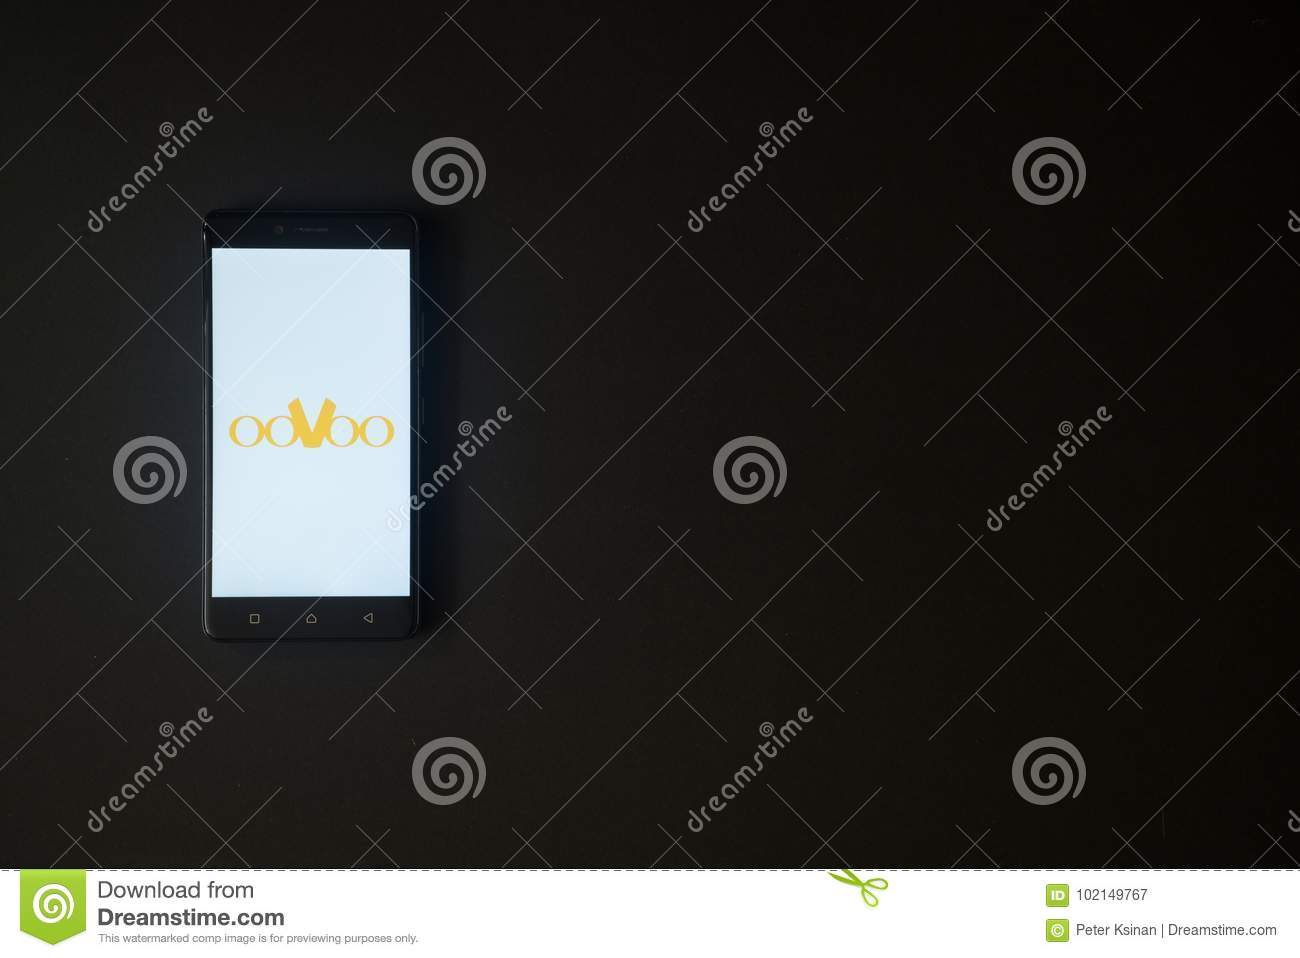 Oovoo Logo On Smartphone Screen On Black Background  Editorial